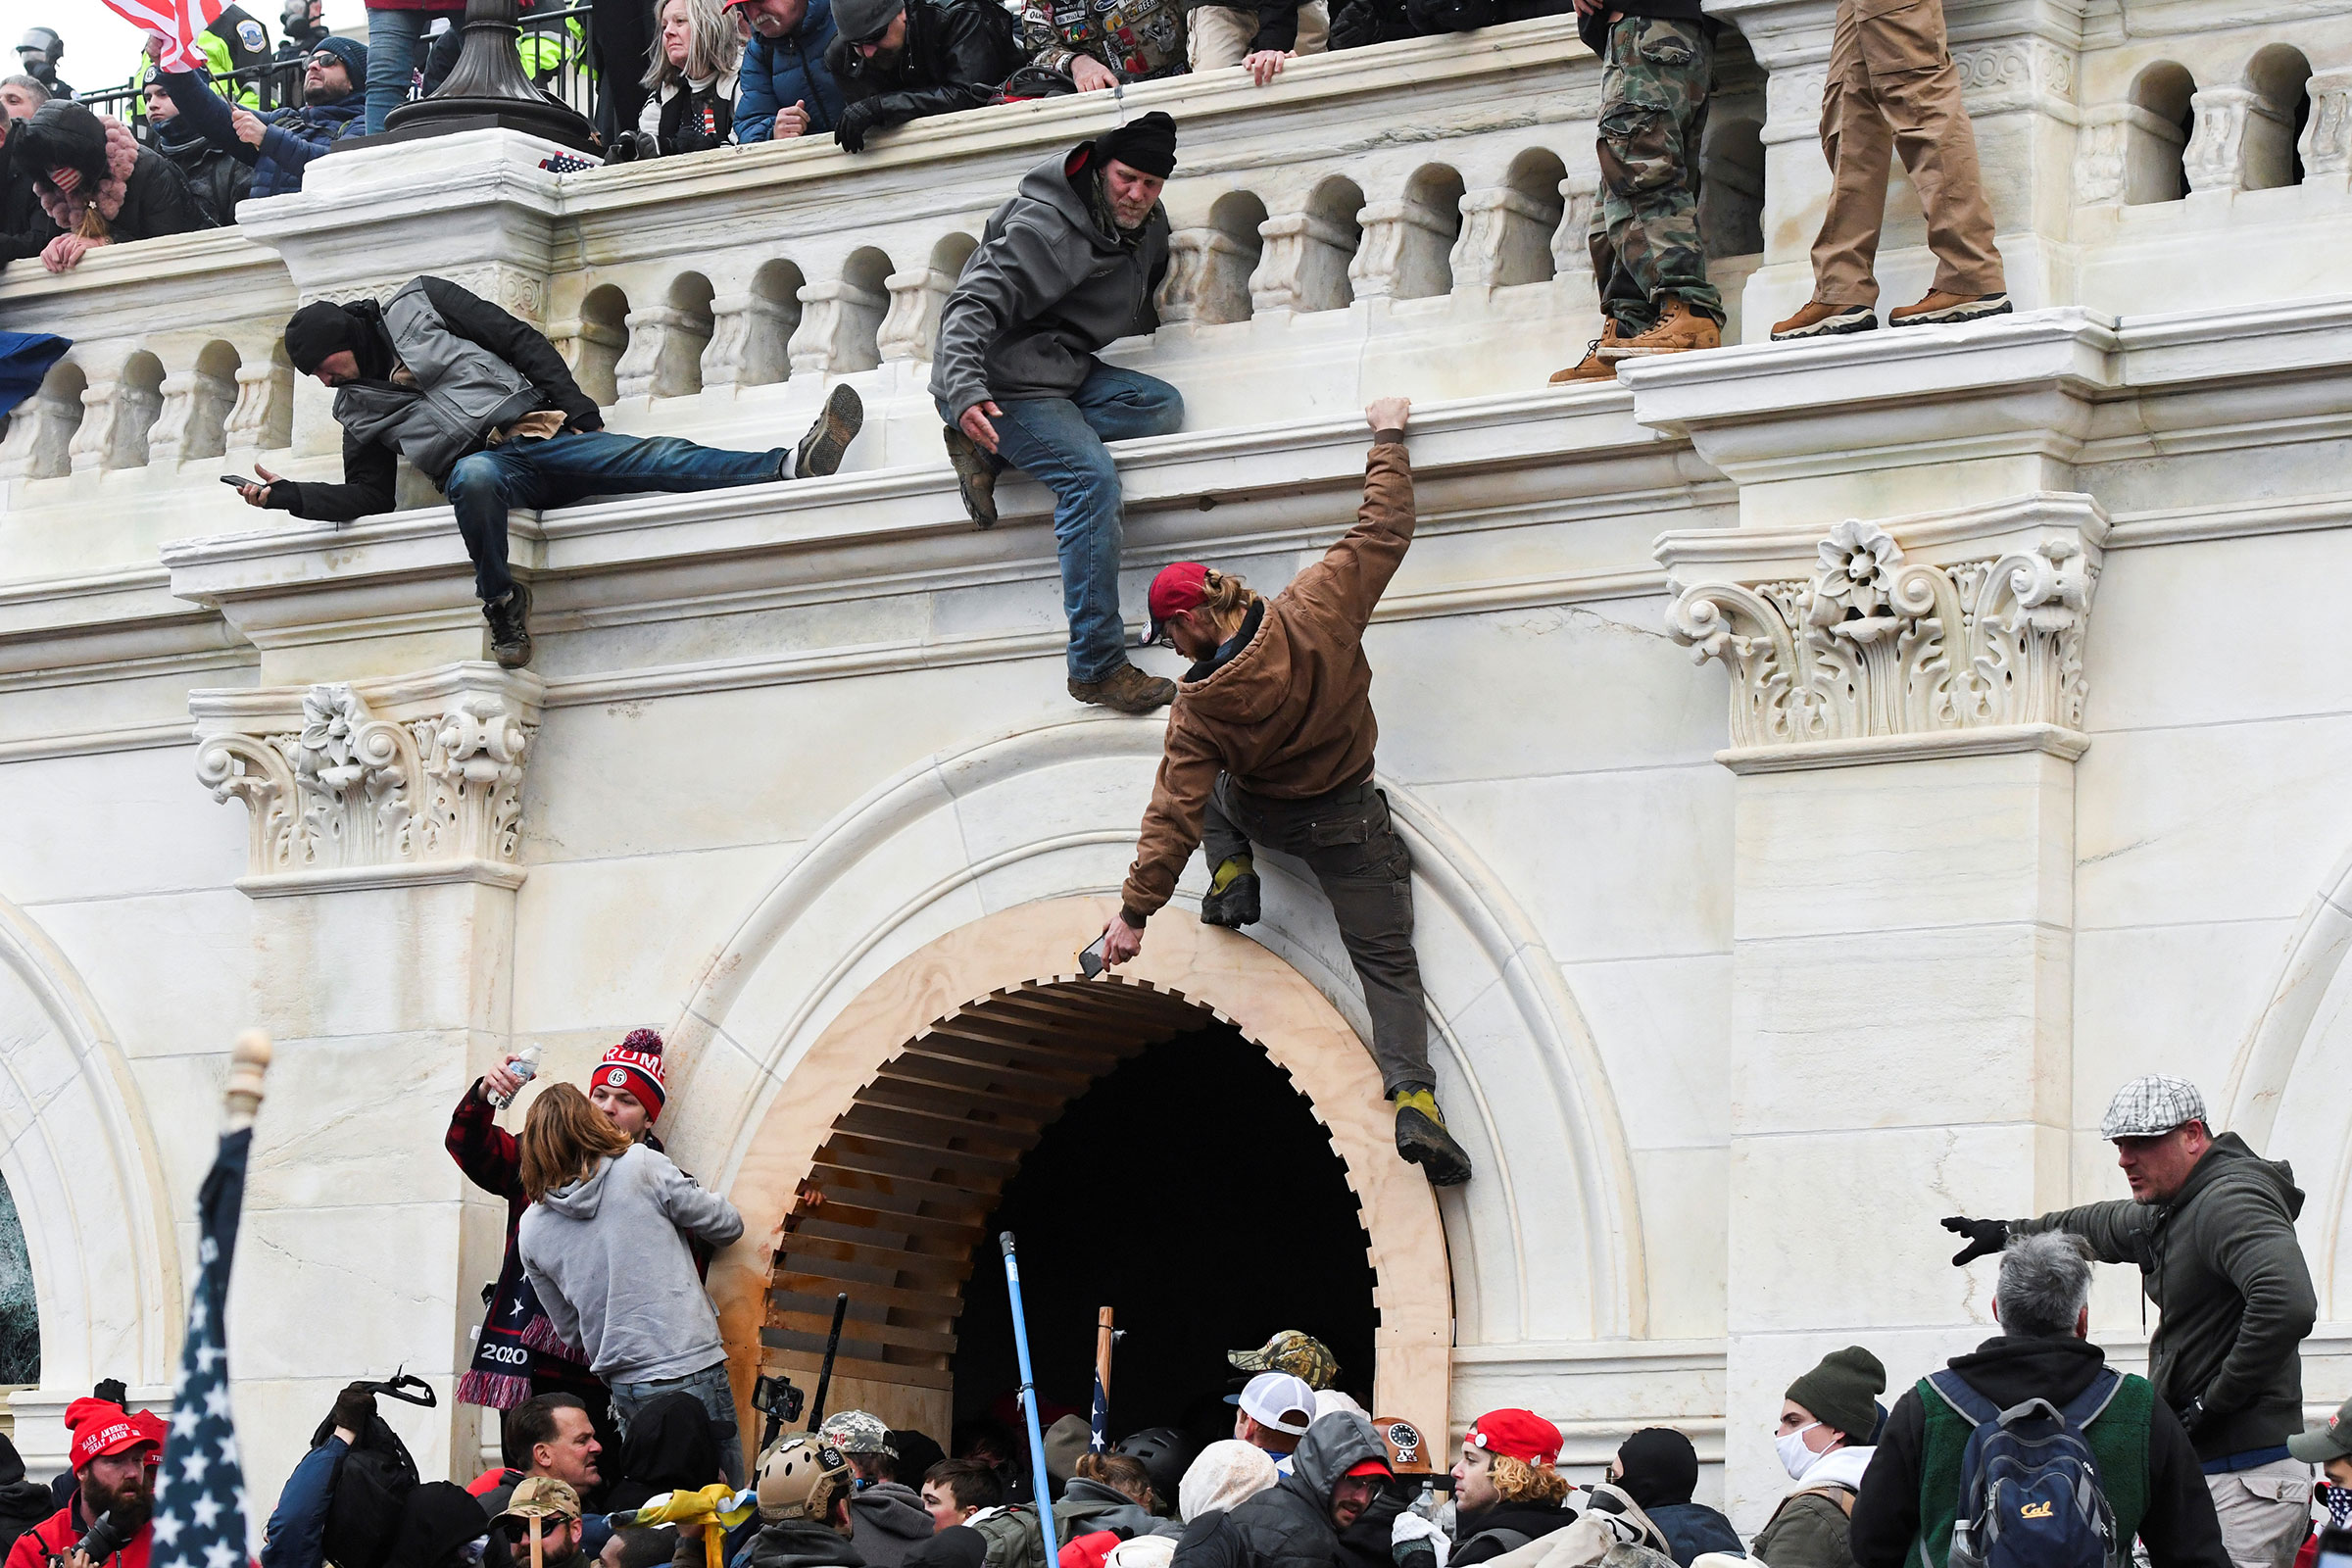 Rioters climb the walls of the U.S. Capitol after President Trump encouraged a rally audience to pressure Republican lawmakers.